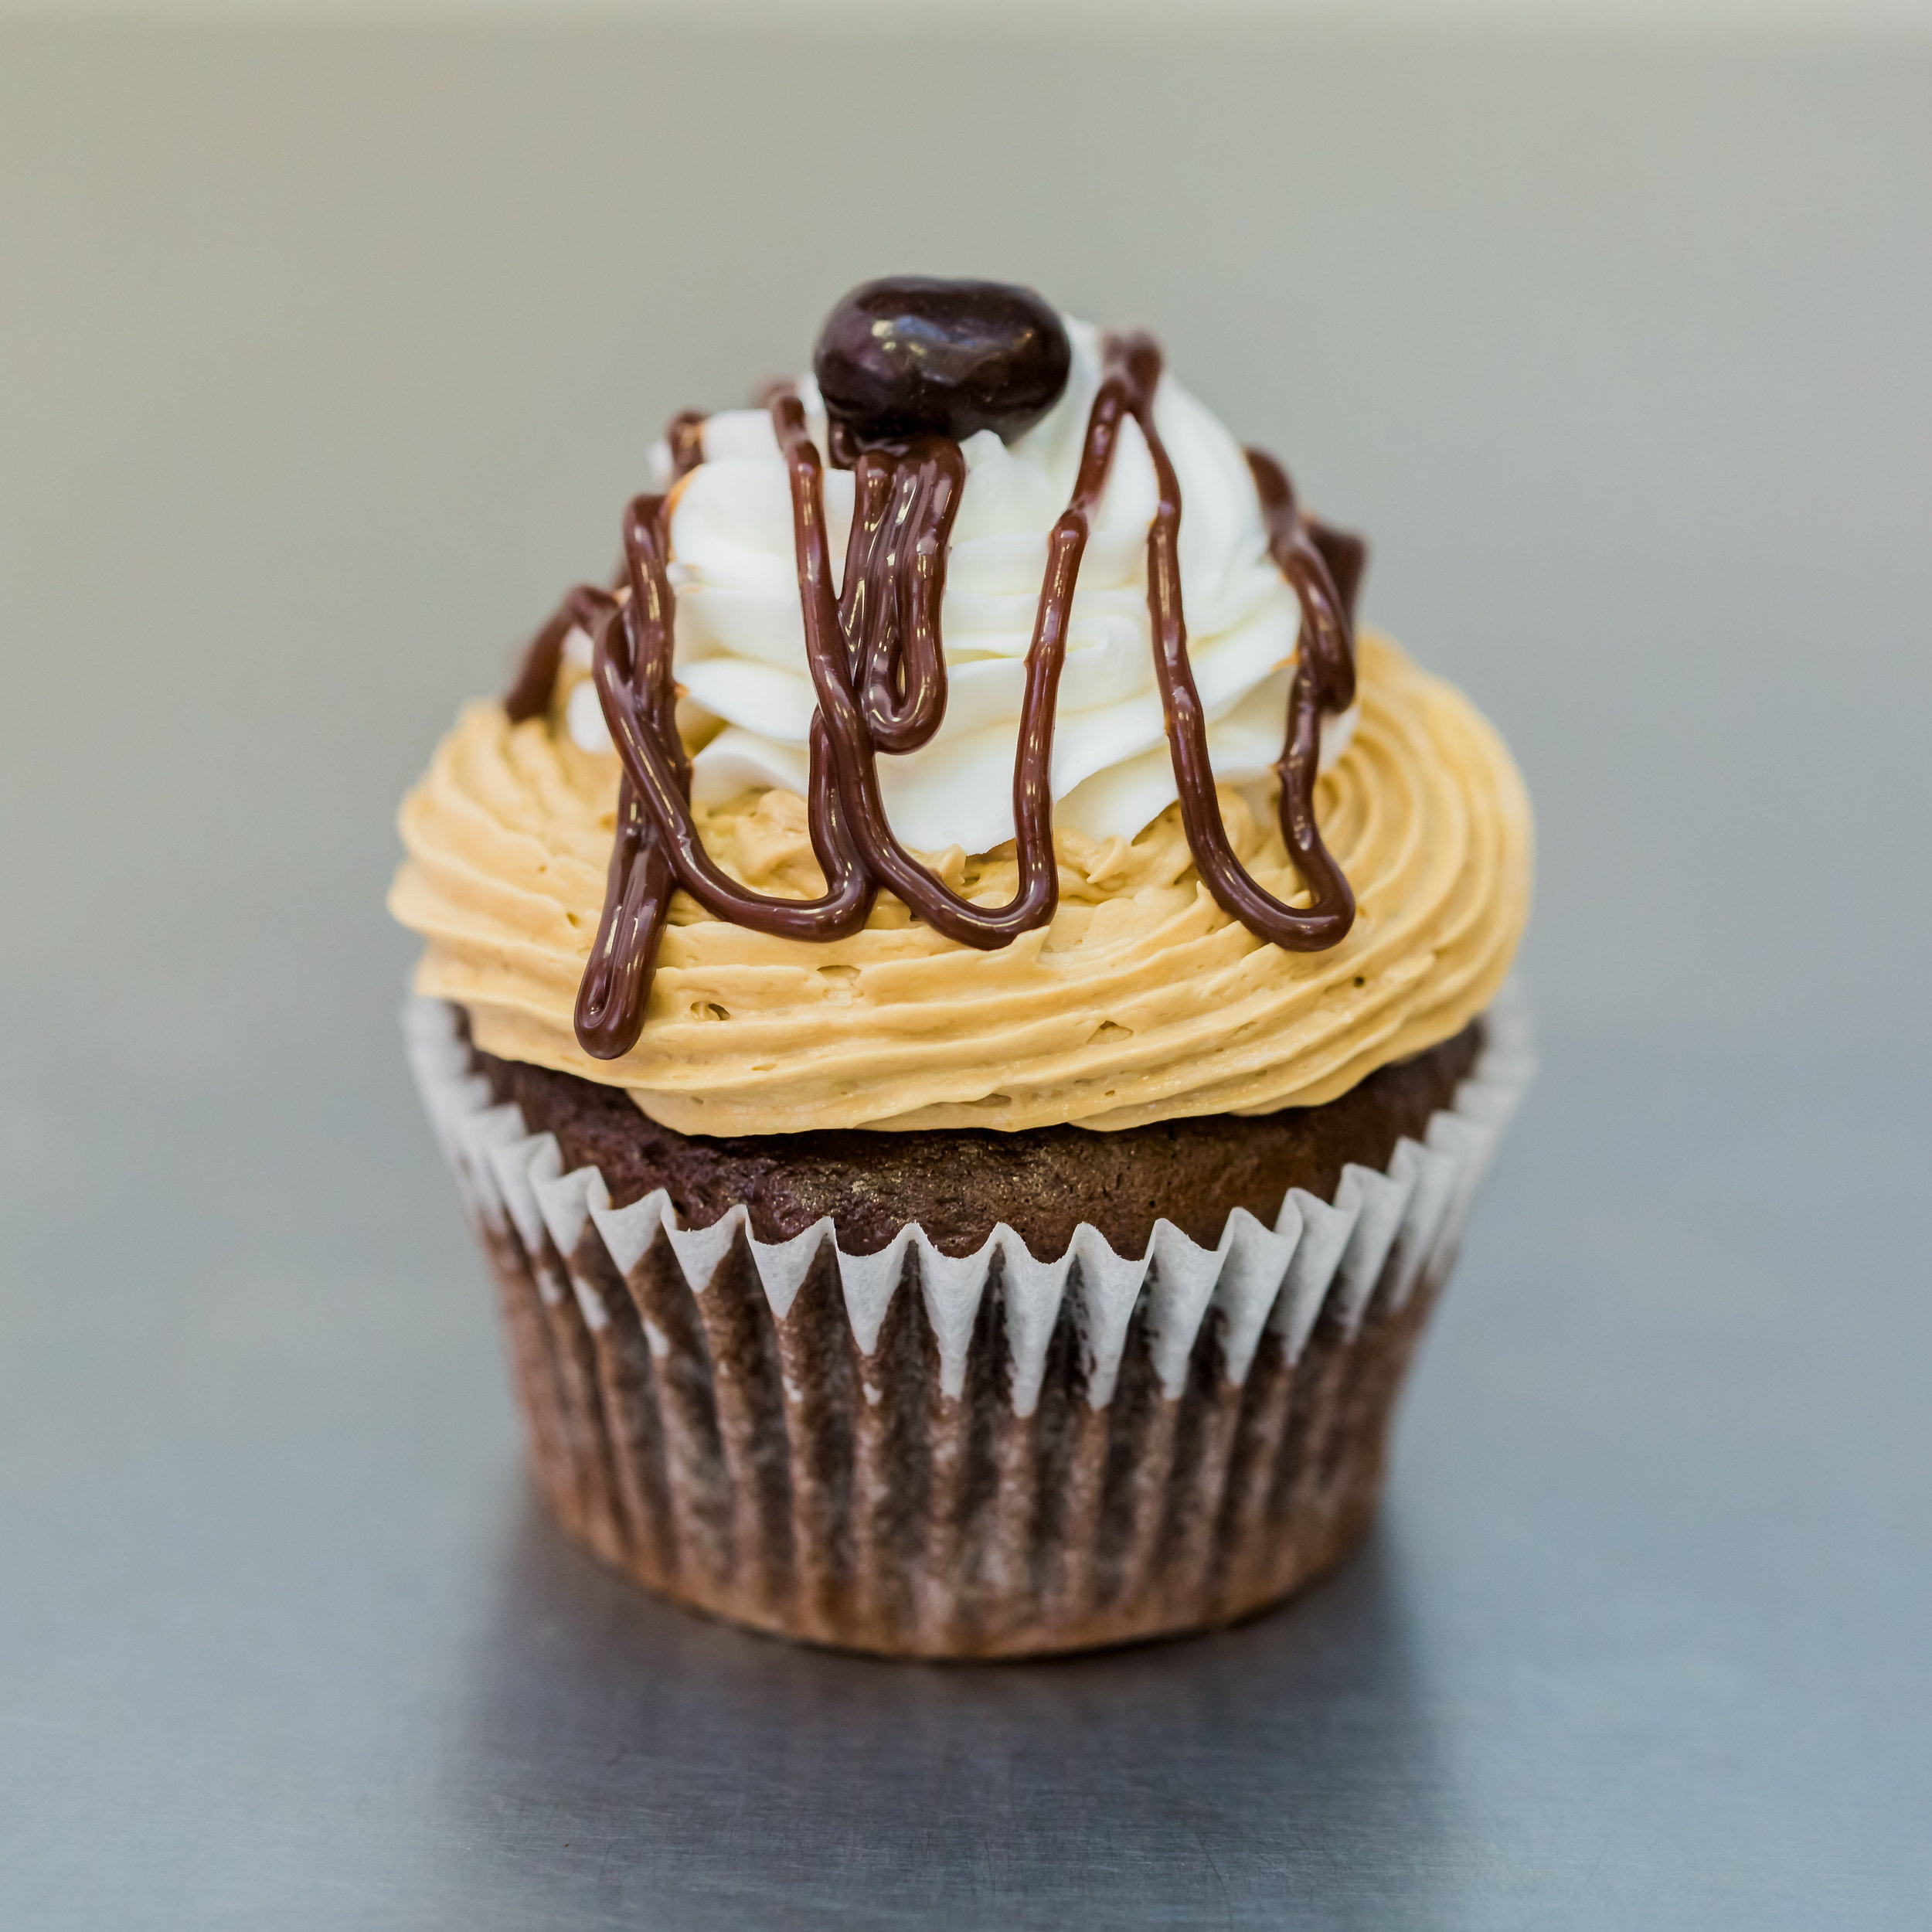 Mocha Latte - Chocolate cake frosted with espresso buttercream and whipped cream, garnished with chocolate ganache drizzle and an espresso bean